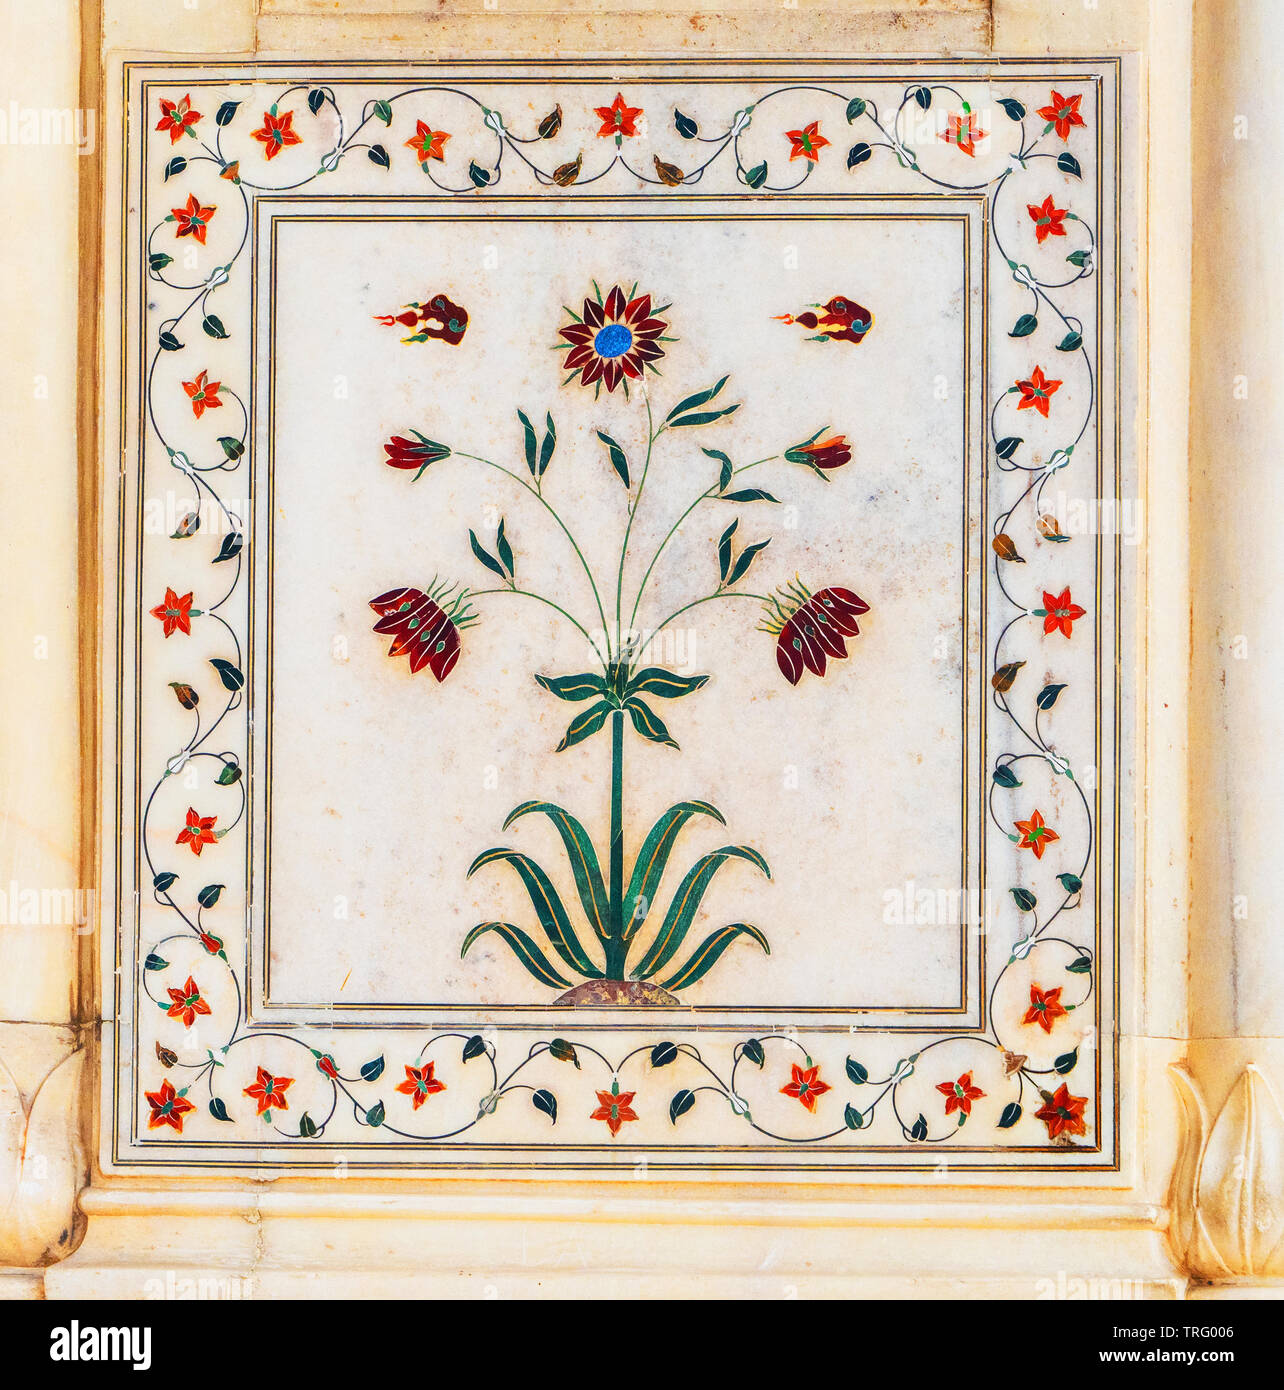 Delicate flower motifs made of coloured marble inlays in white marble adorning the Rang Mahal pavilion of the Red Fort complex in Delhi Northern India - Stock Image